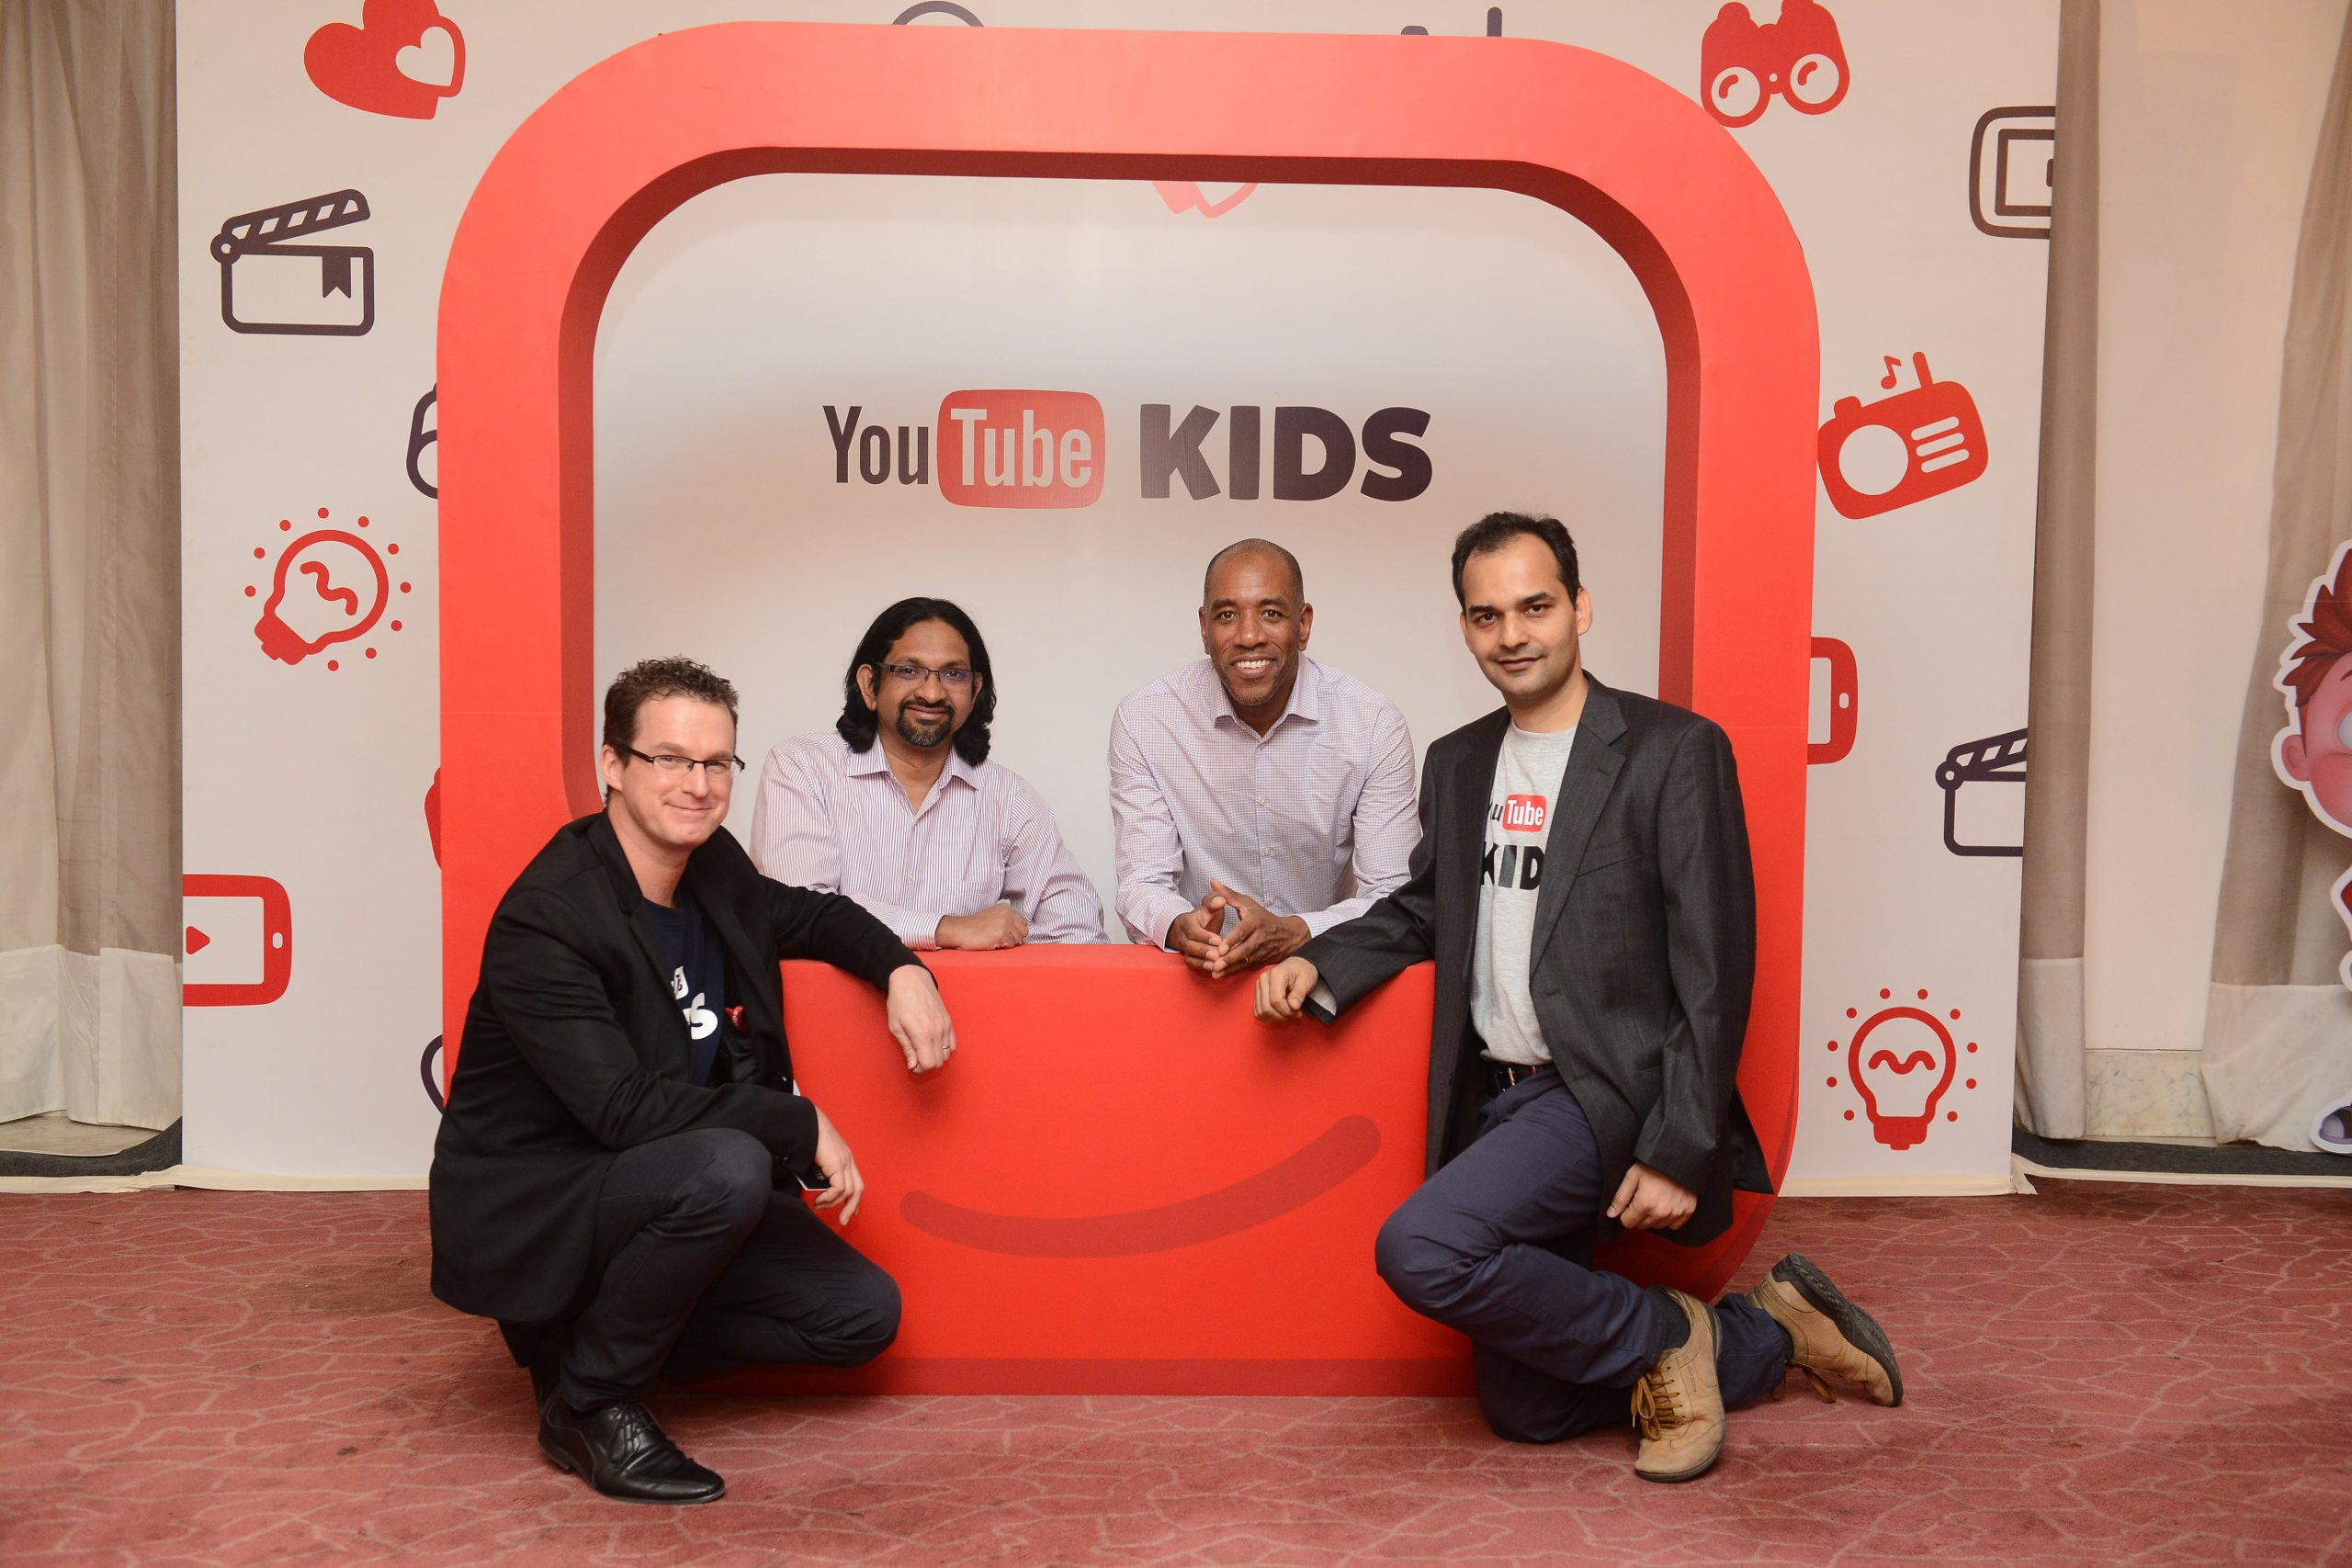 youtube-kids_event-photograph-2